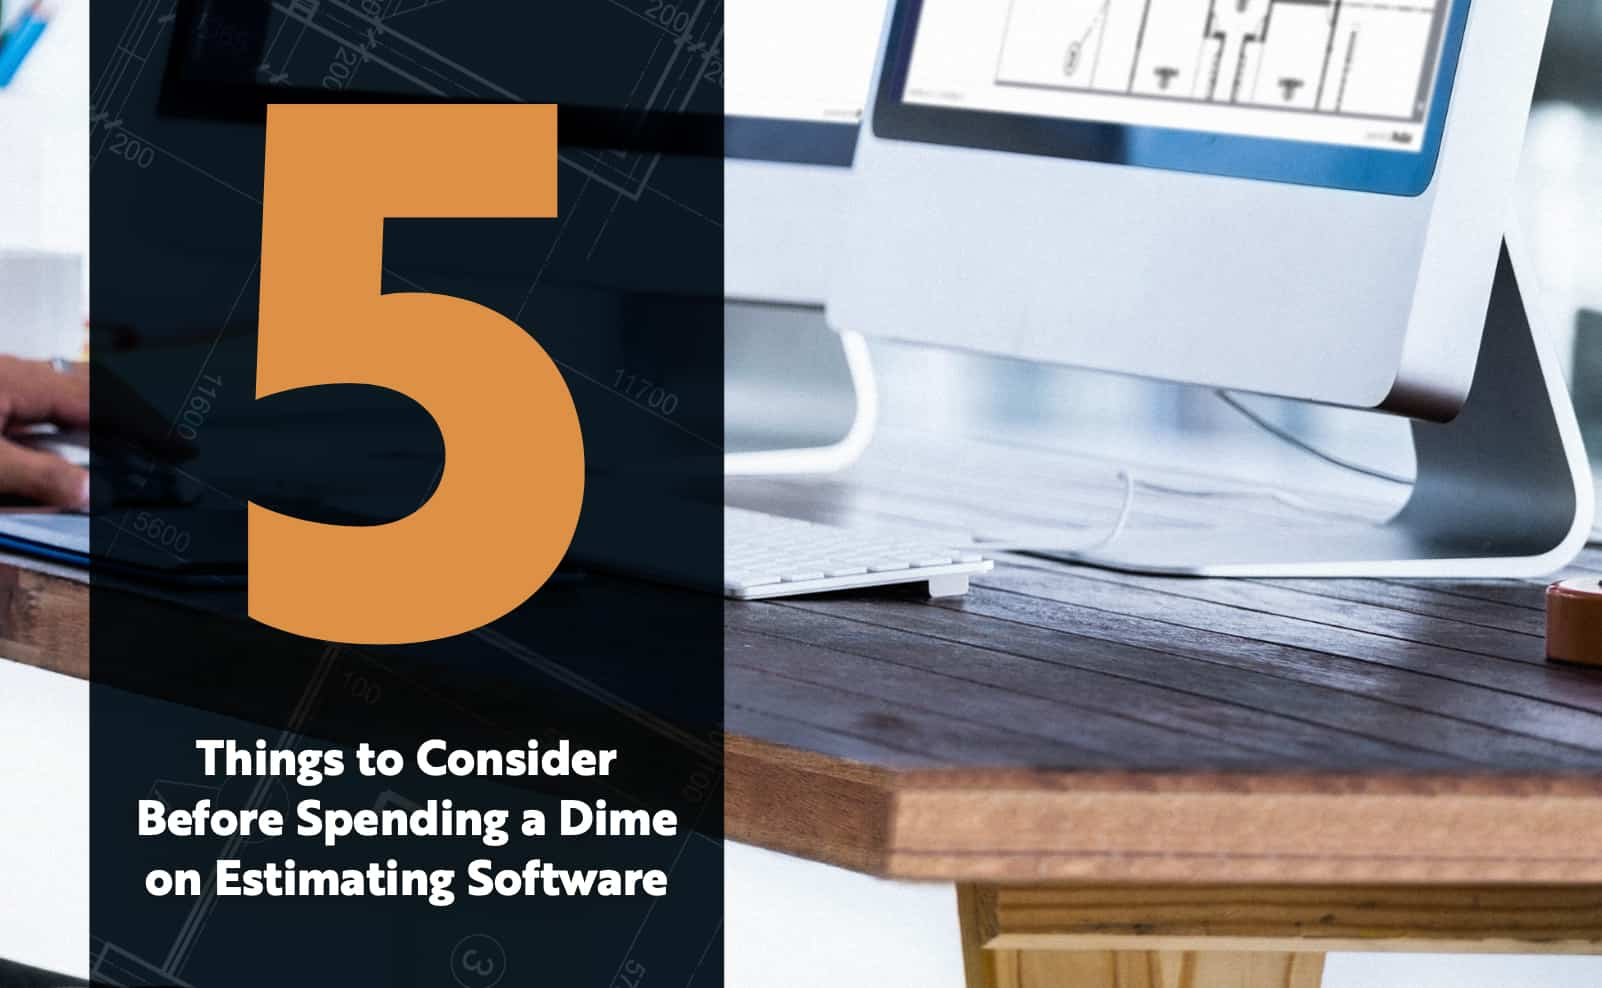 5 Things to Consider Before Spending a Dime on Estimating Software